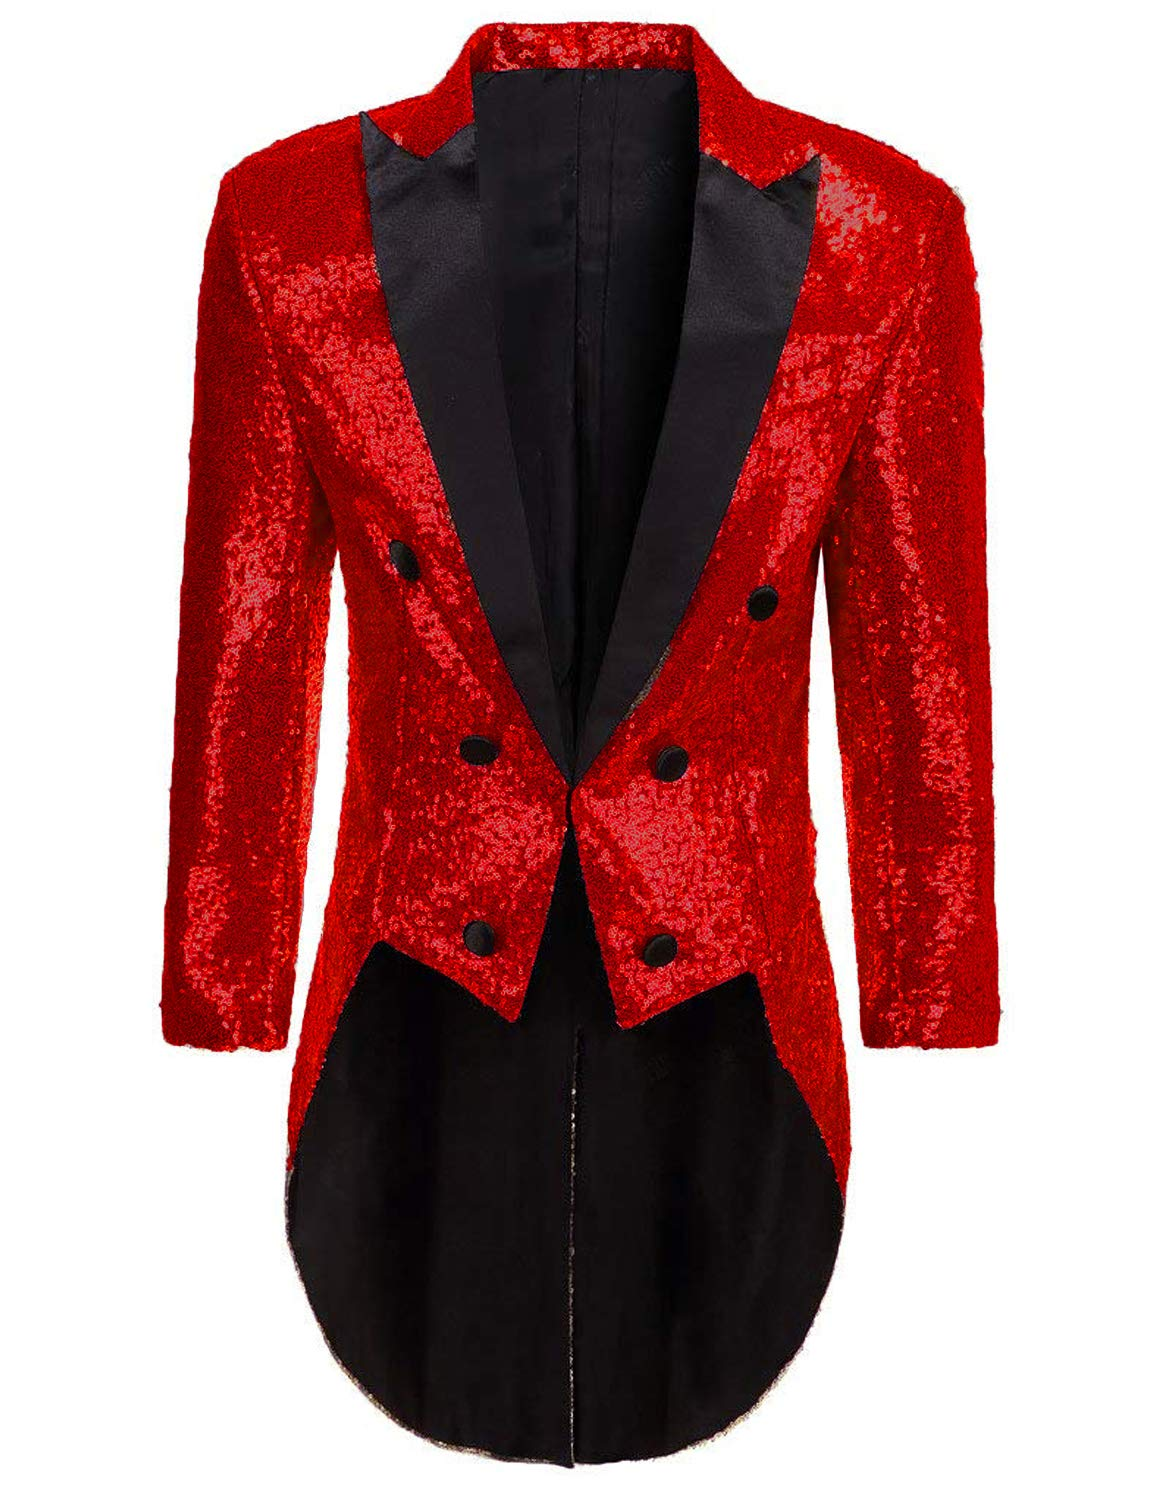 Men Sequin Dress Coat Swallowtail Dinner Party Red Wedding Blazer Suit Jacket for Circus by DGMJDFKDRFU